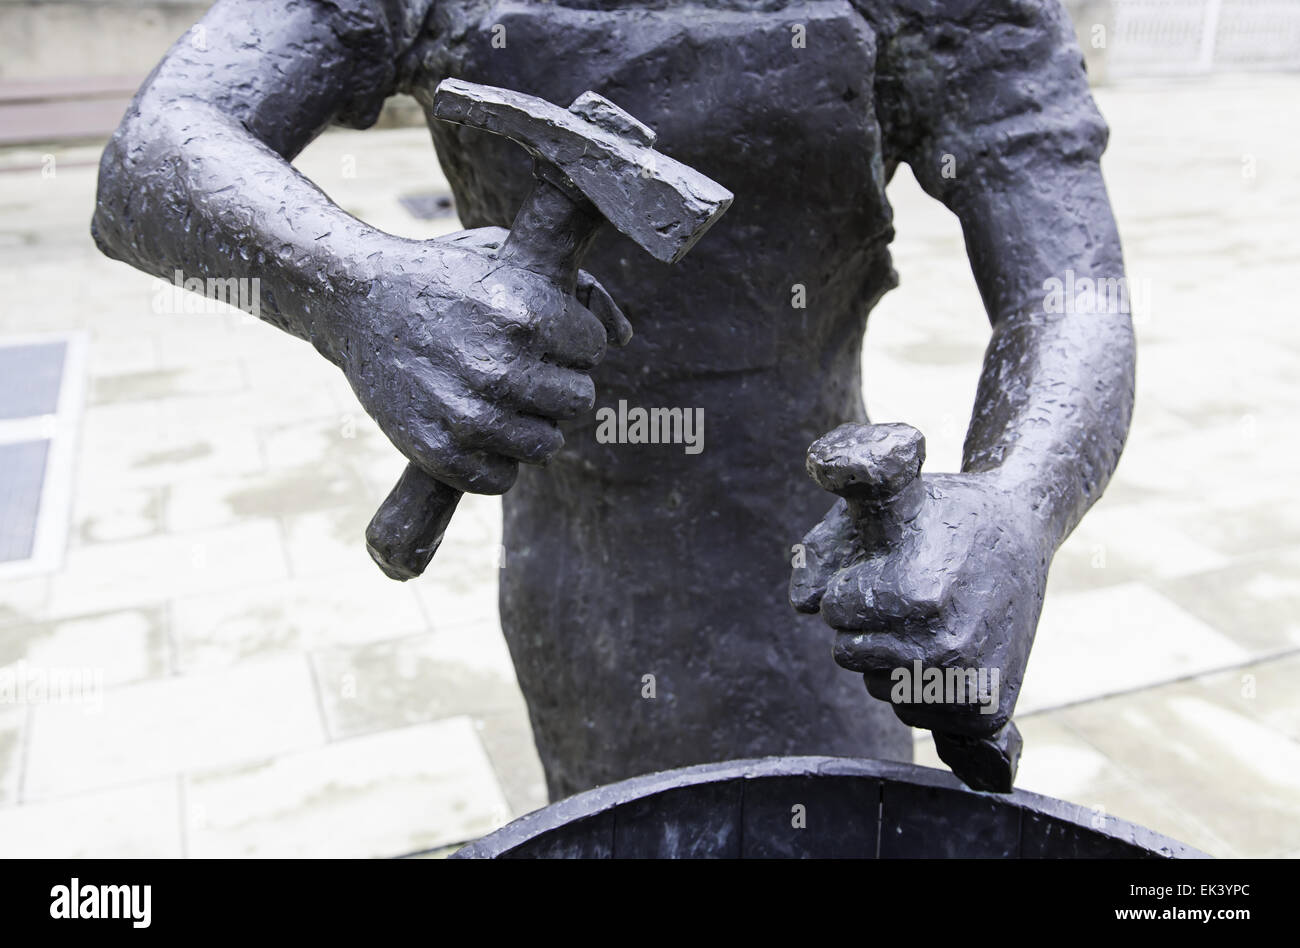 Bronze statue with a hammer, detail of a statue of a worker Stock Photo